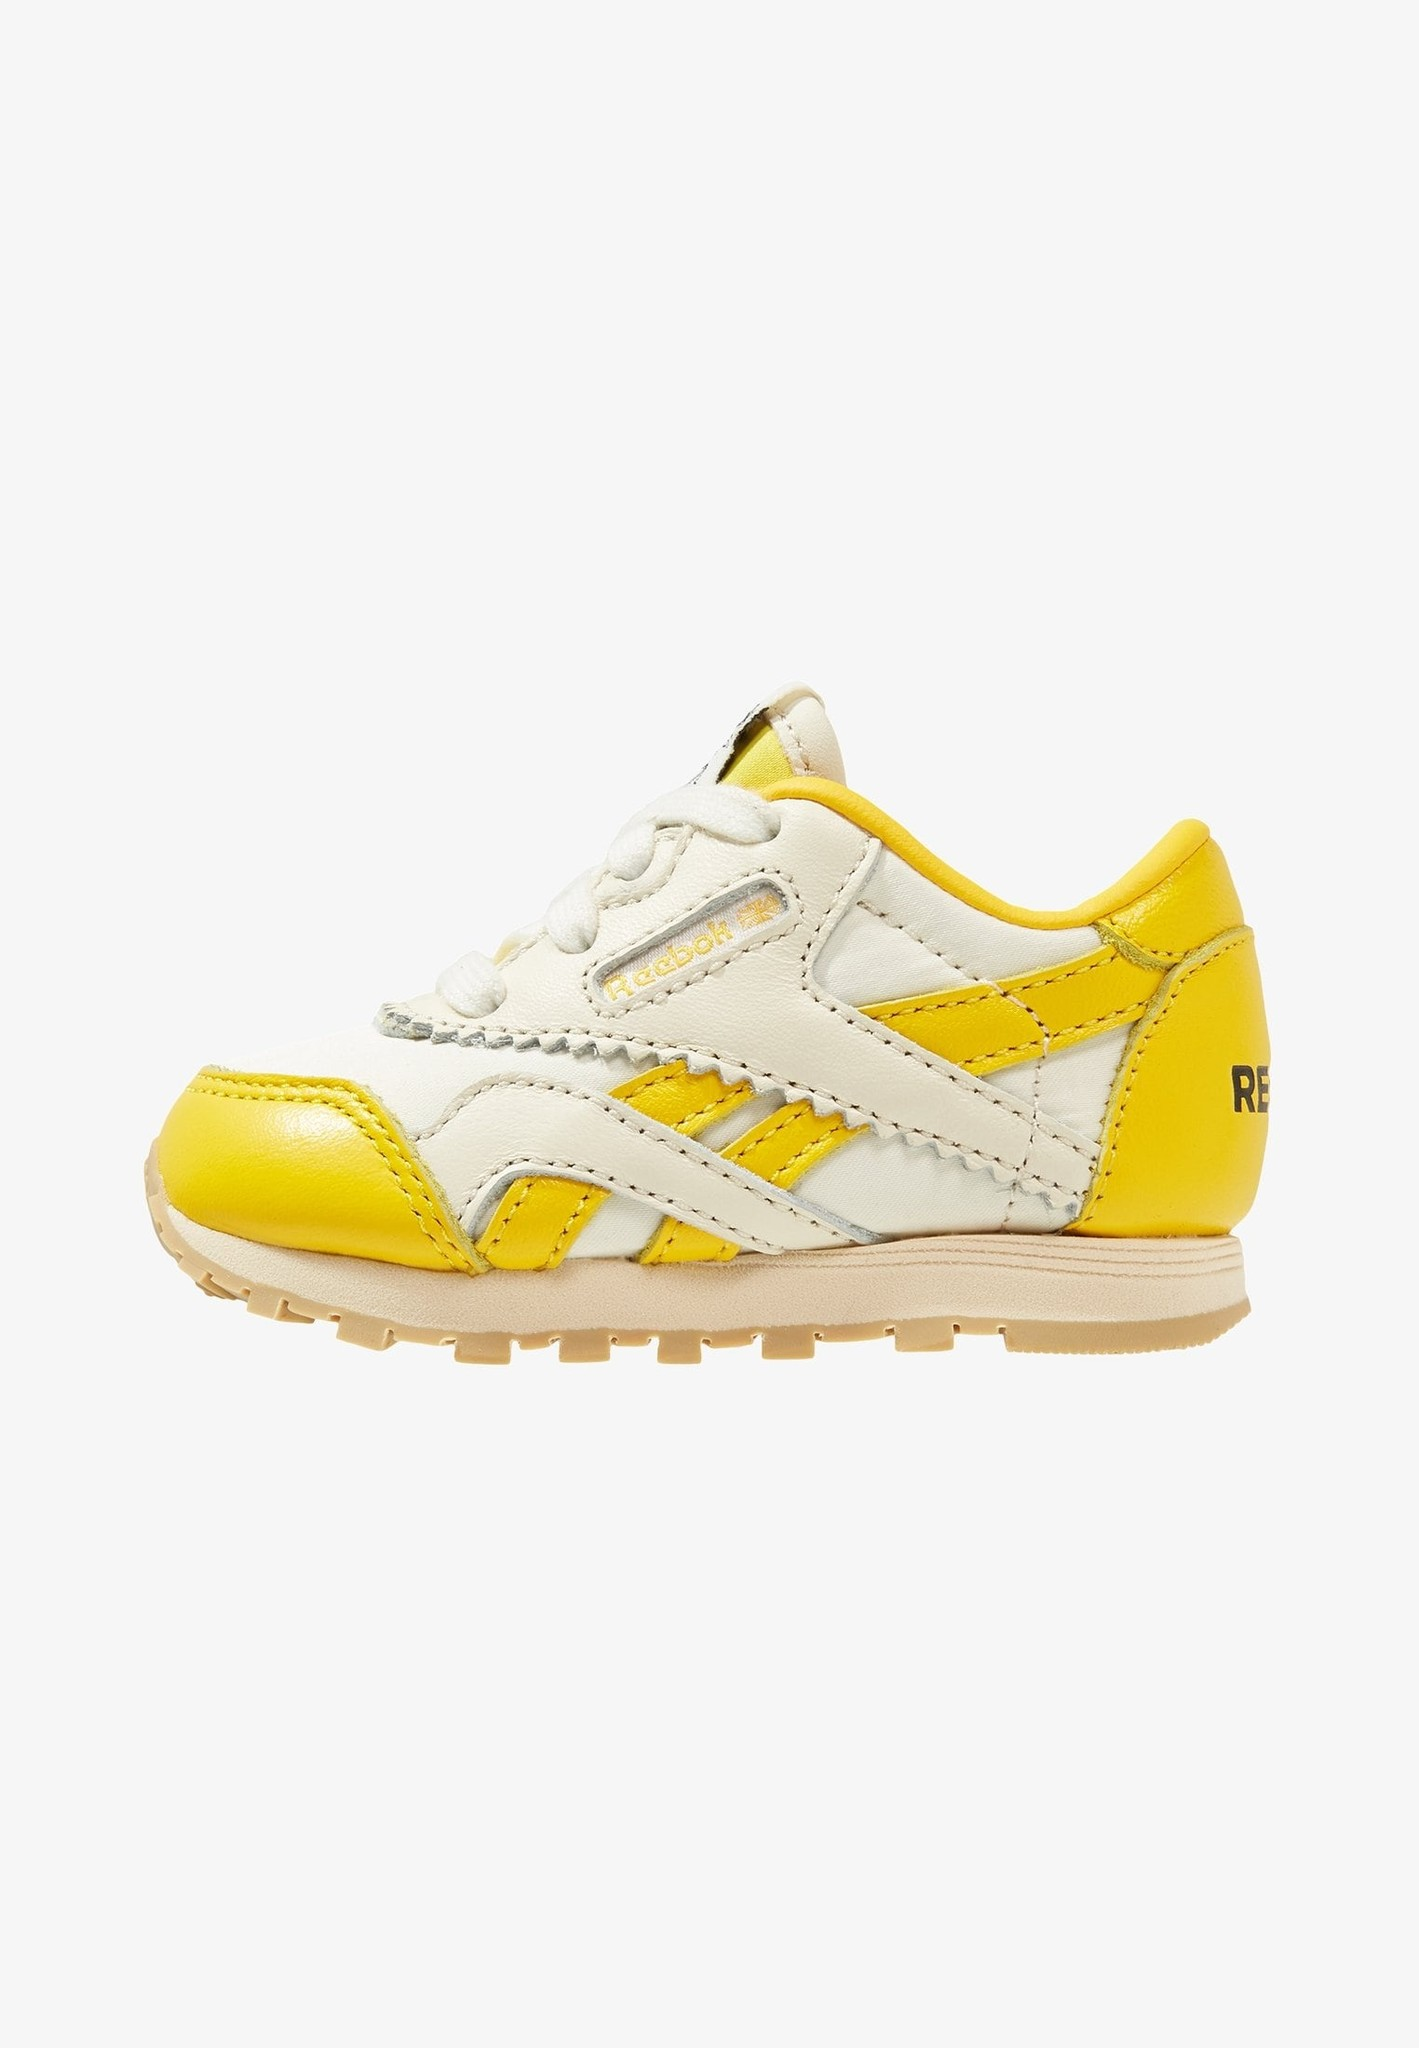 The Animals Observatory x Reebok Classic Nylon Infant